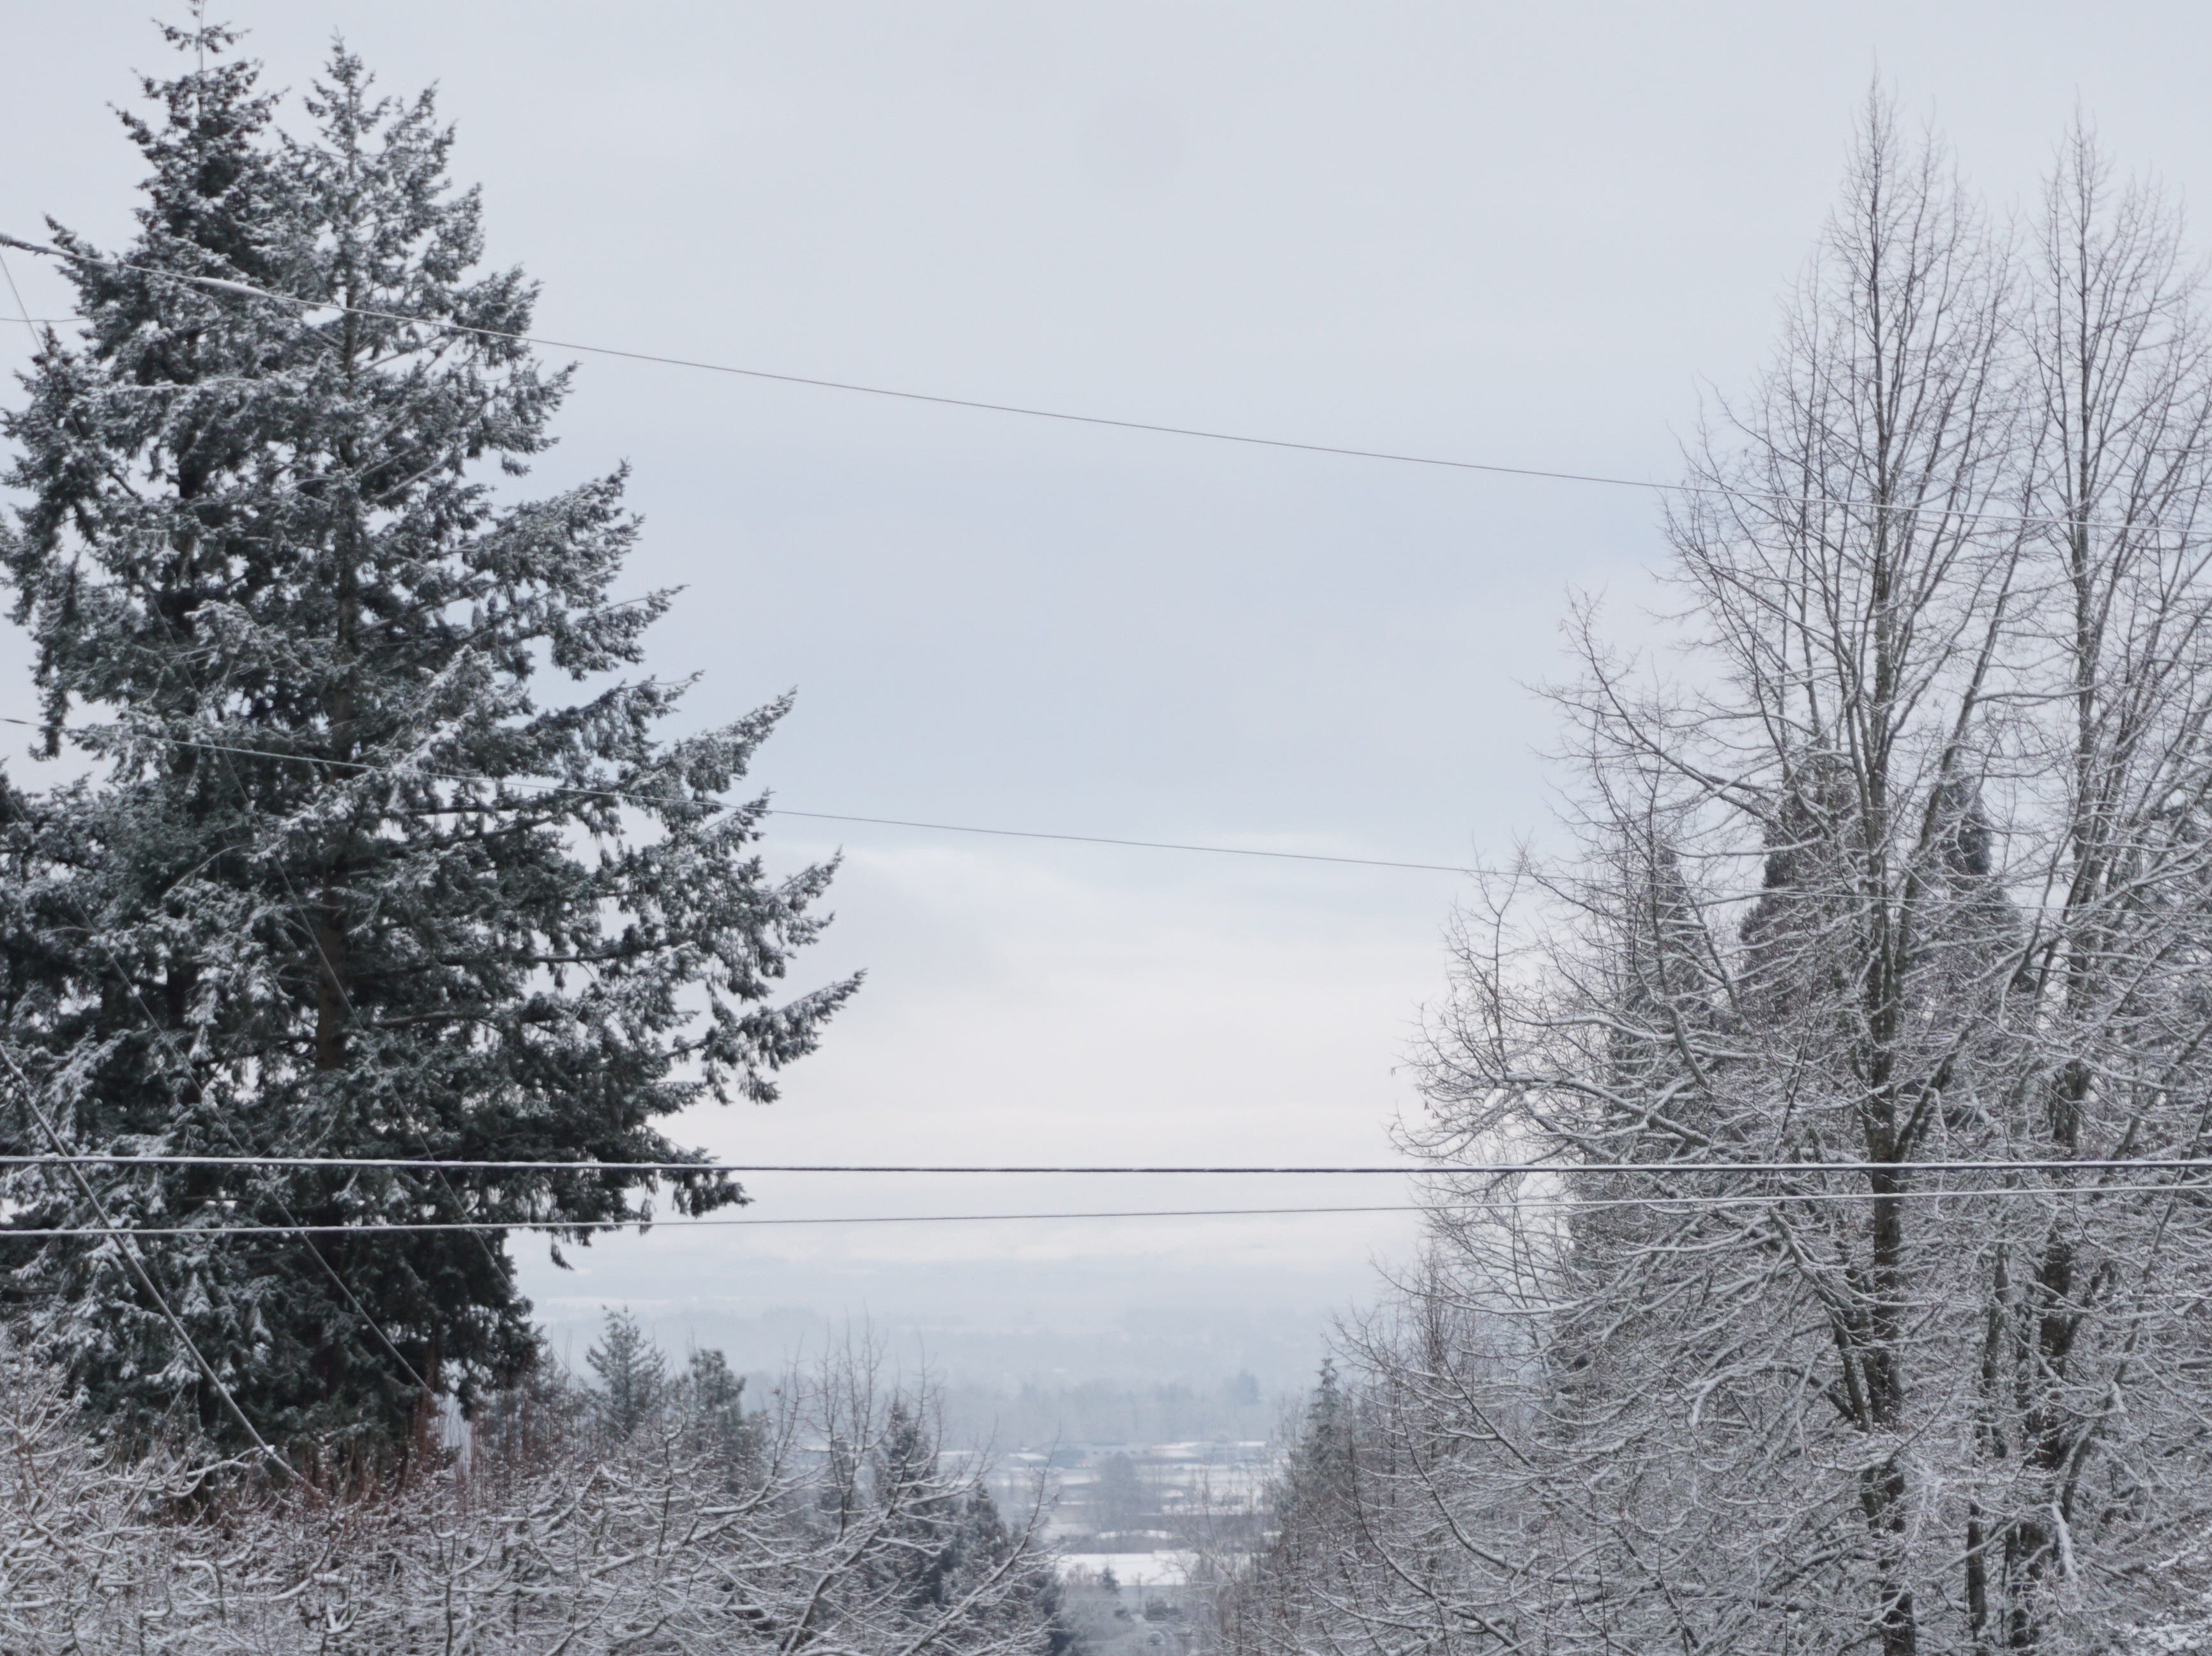 Snow dazzles the trees along Vista Avenue SE on Tuesday, Feb. 5, 2019 in Salem.